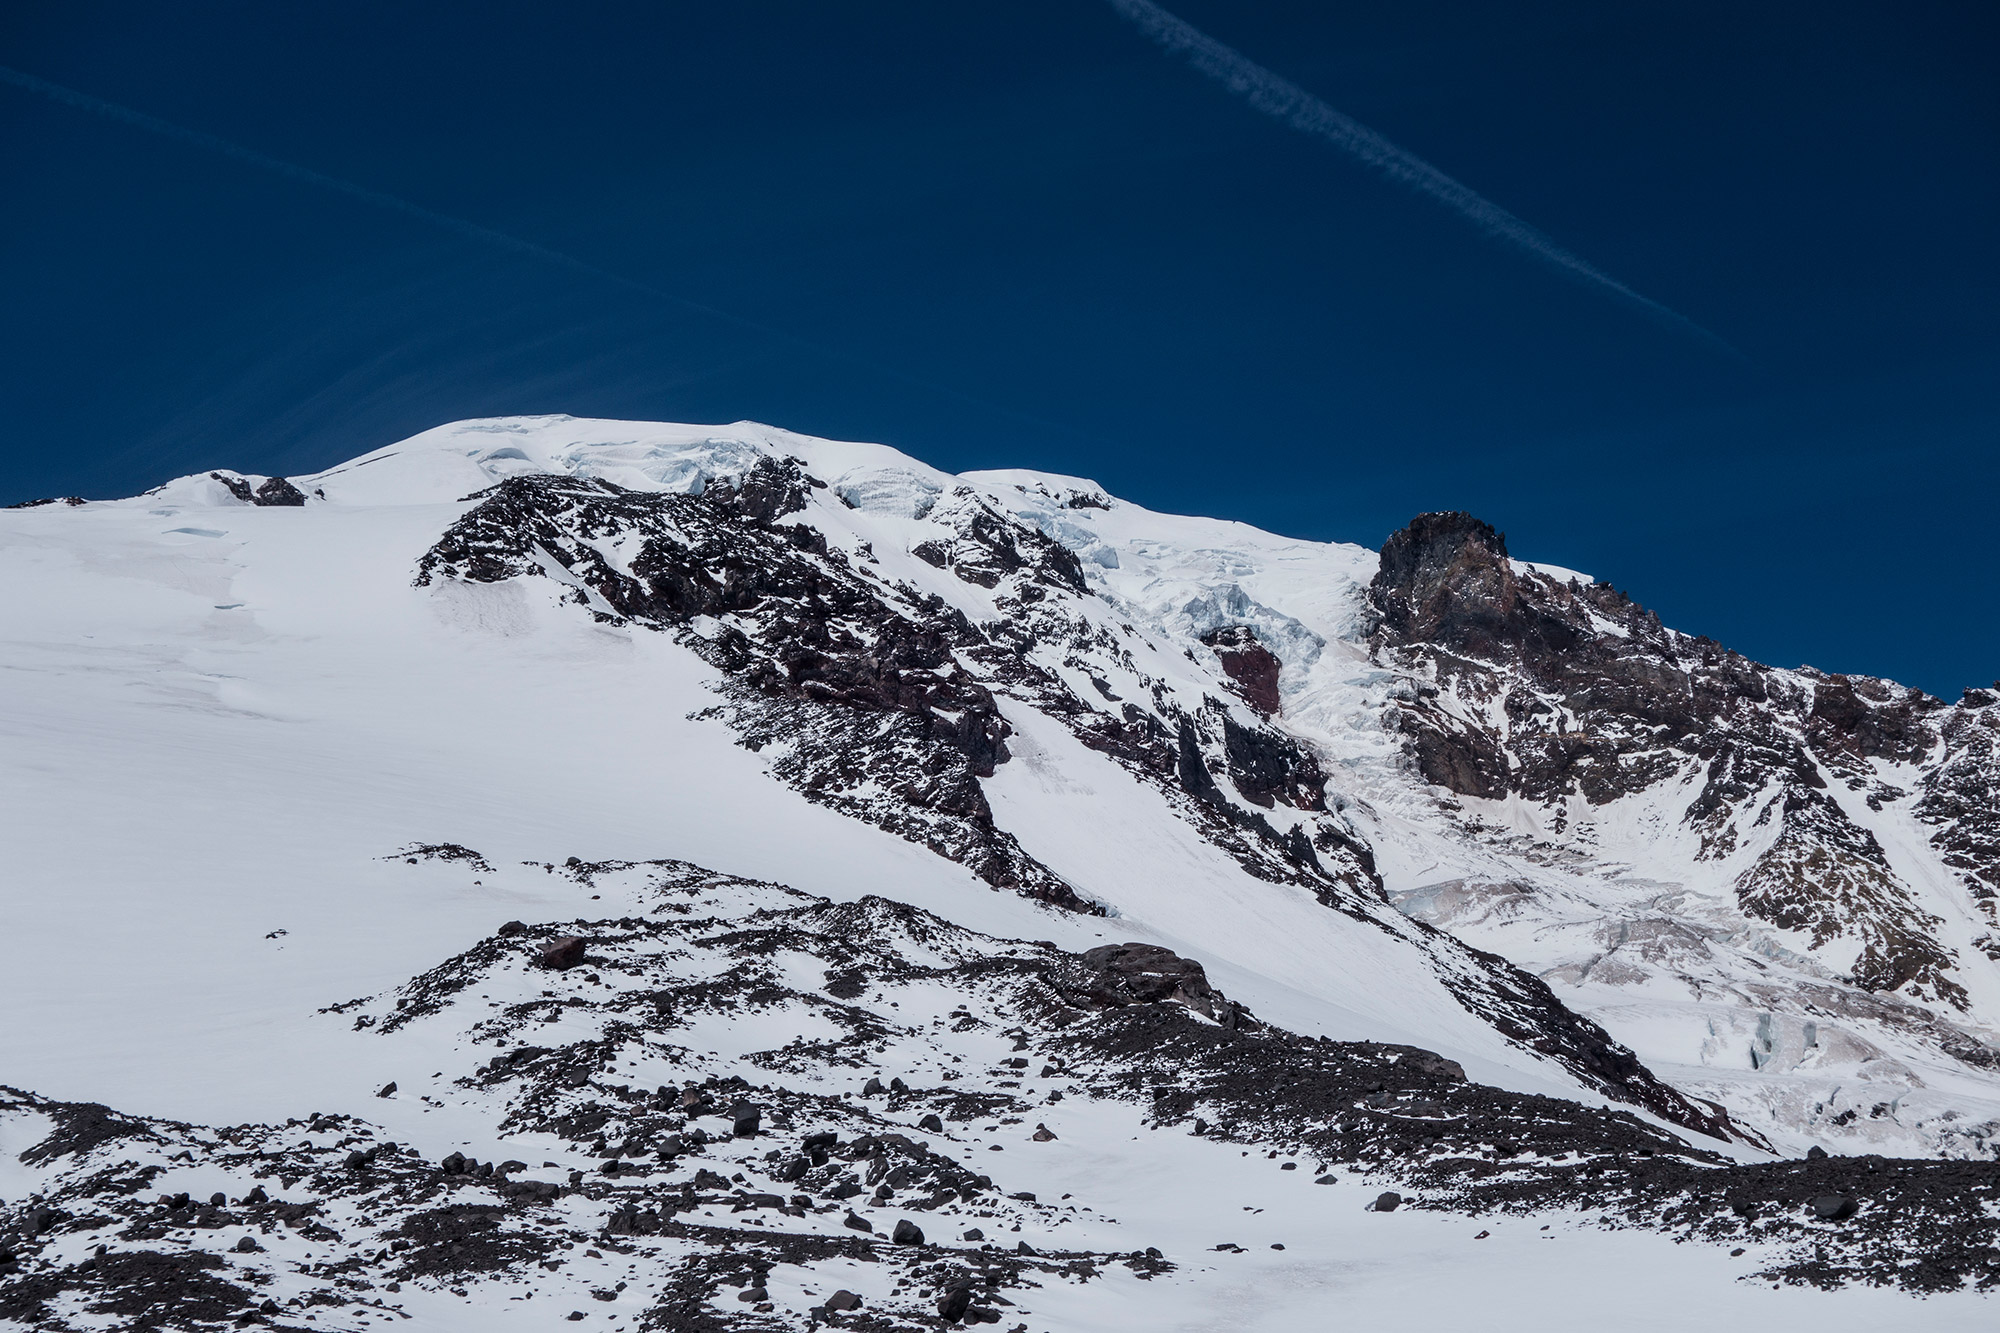 Looking up at Mount Adams from a camp on te nearby Mazama Glacier. The South Ridge is to the left. | Credit: Ryan Wichelns